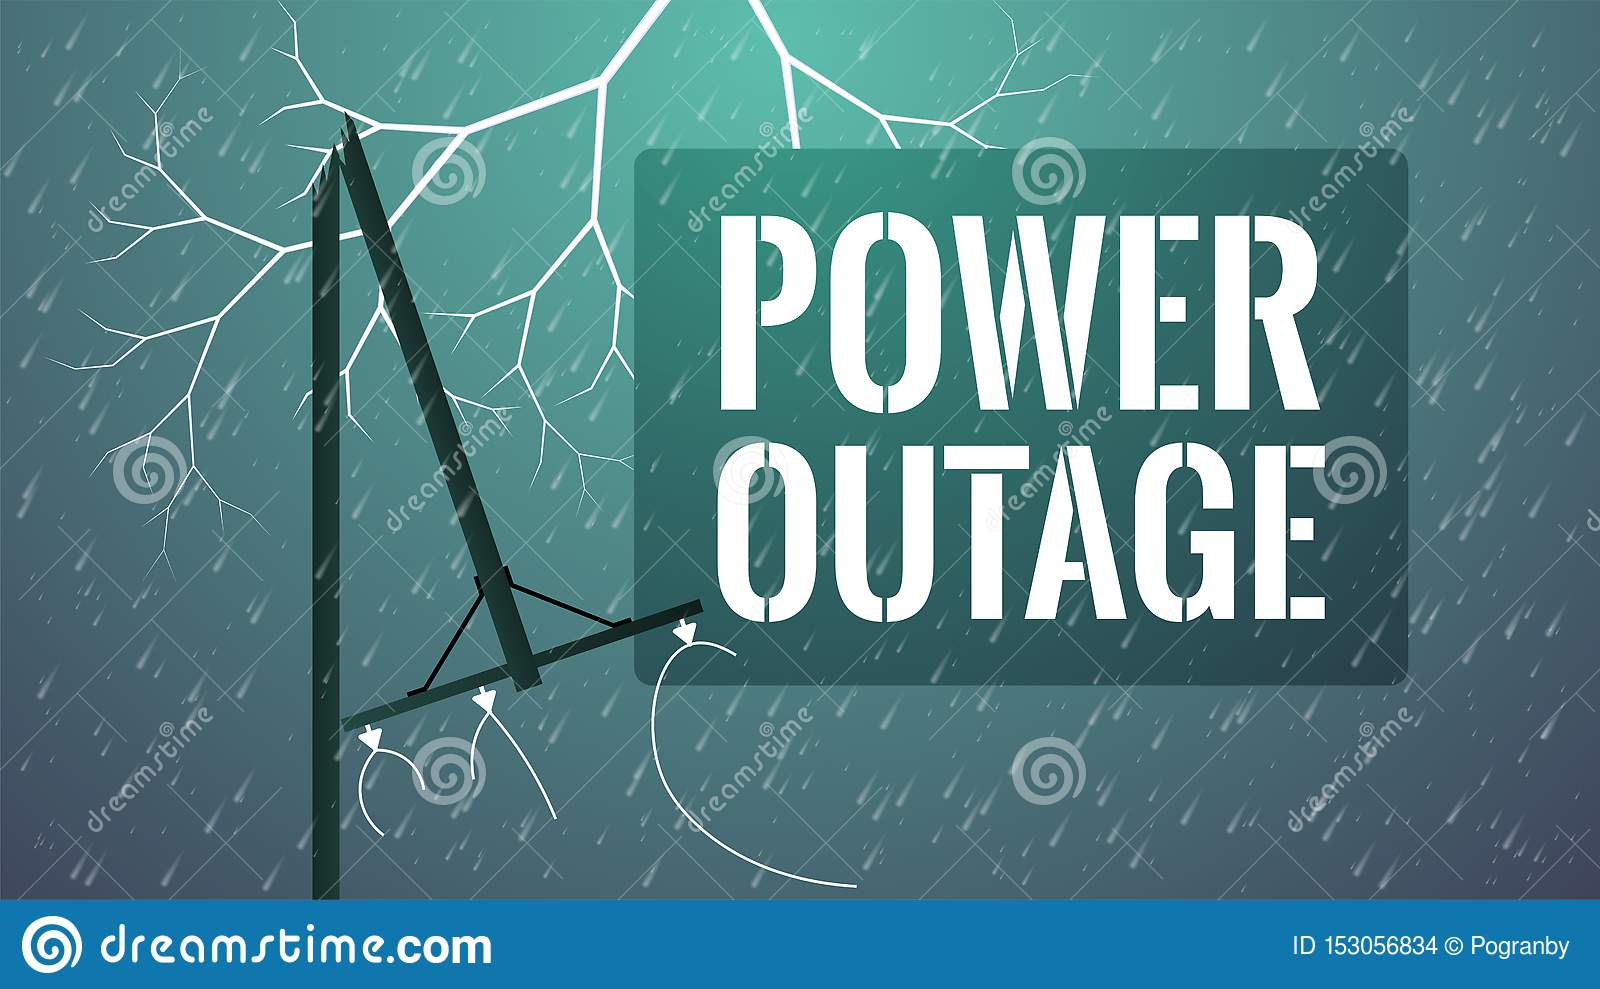 Power Outage Clipart   Free Images at Clker.com - vector clip art online,  royalty free & public domain